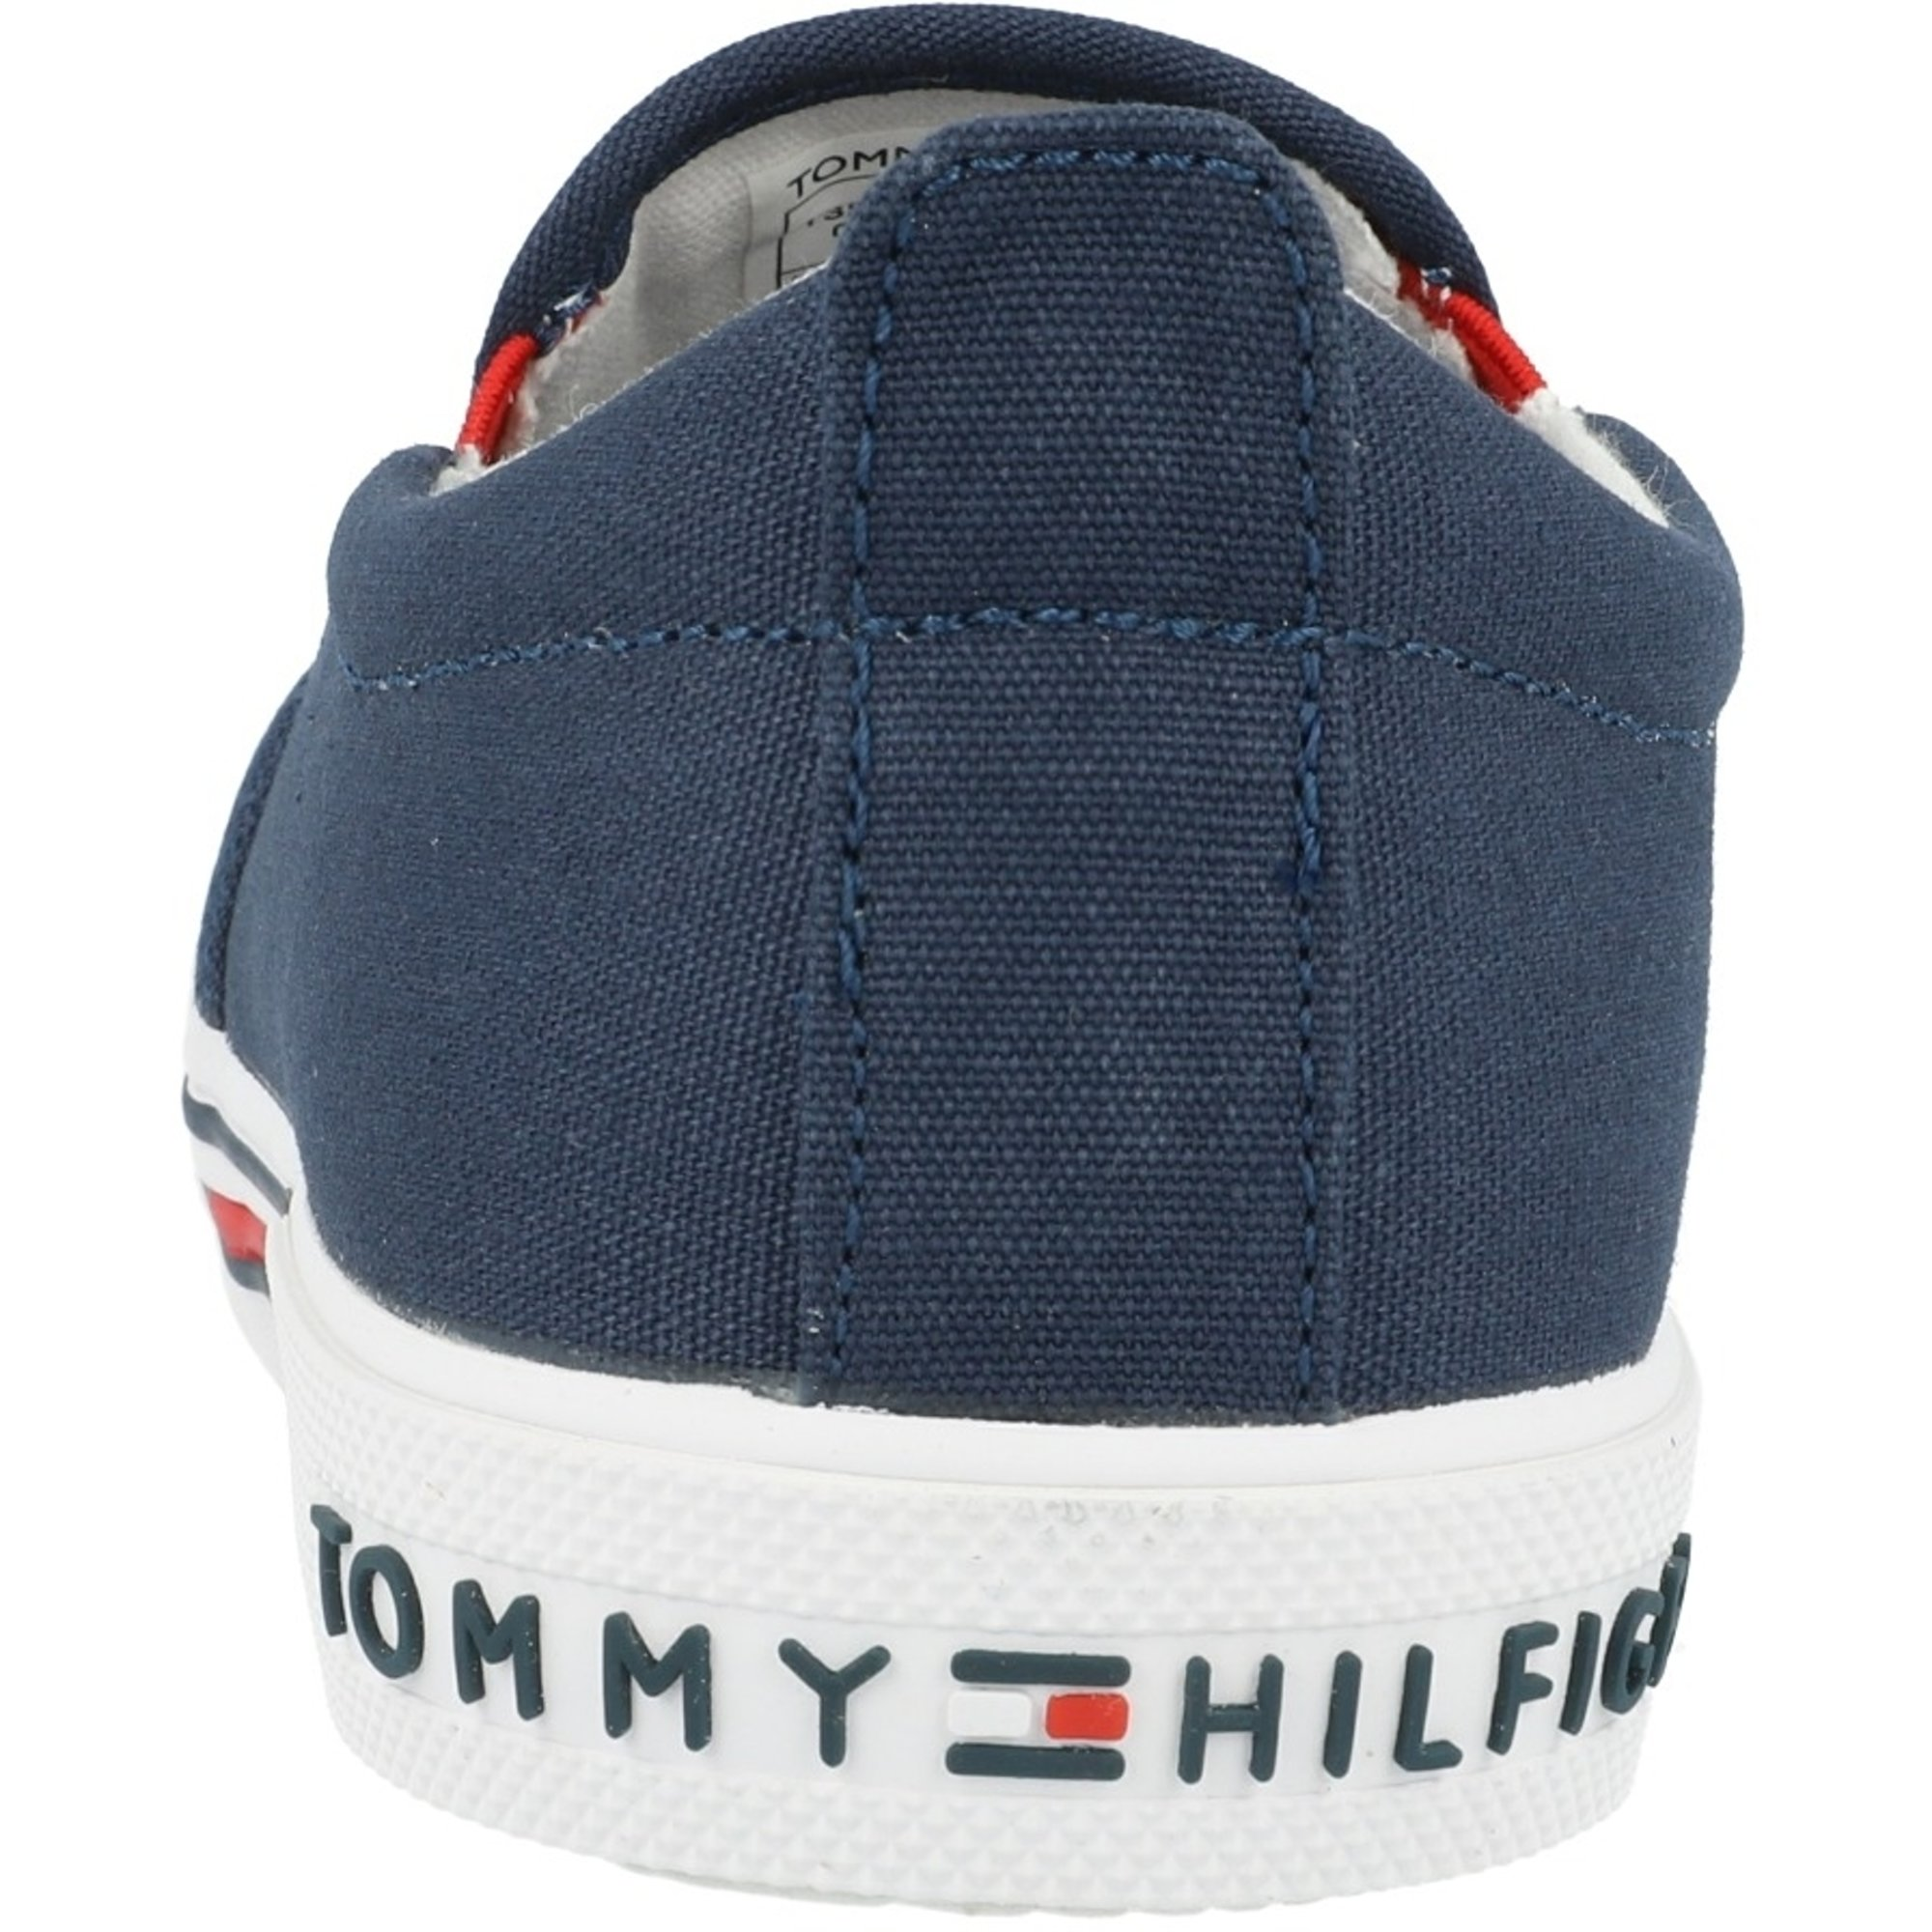 Tommy Hilfiger Trainer Blue Recycled Canvas